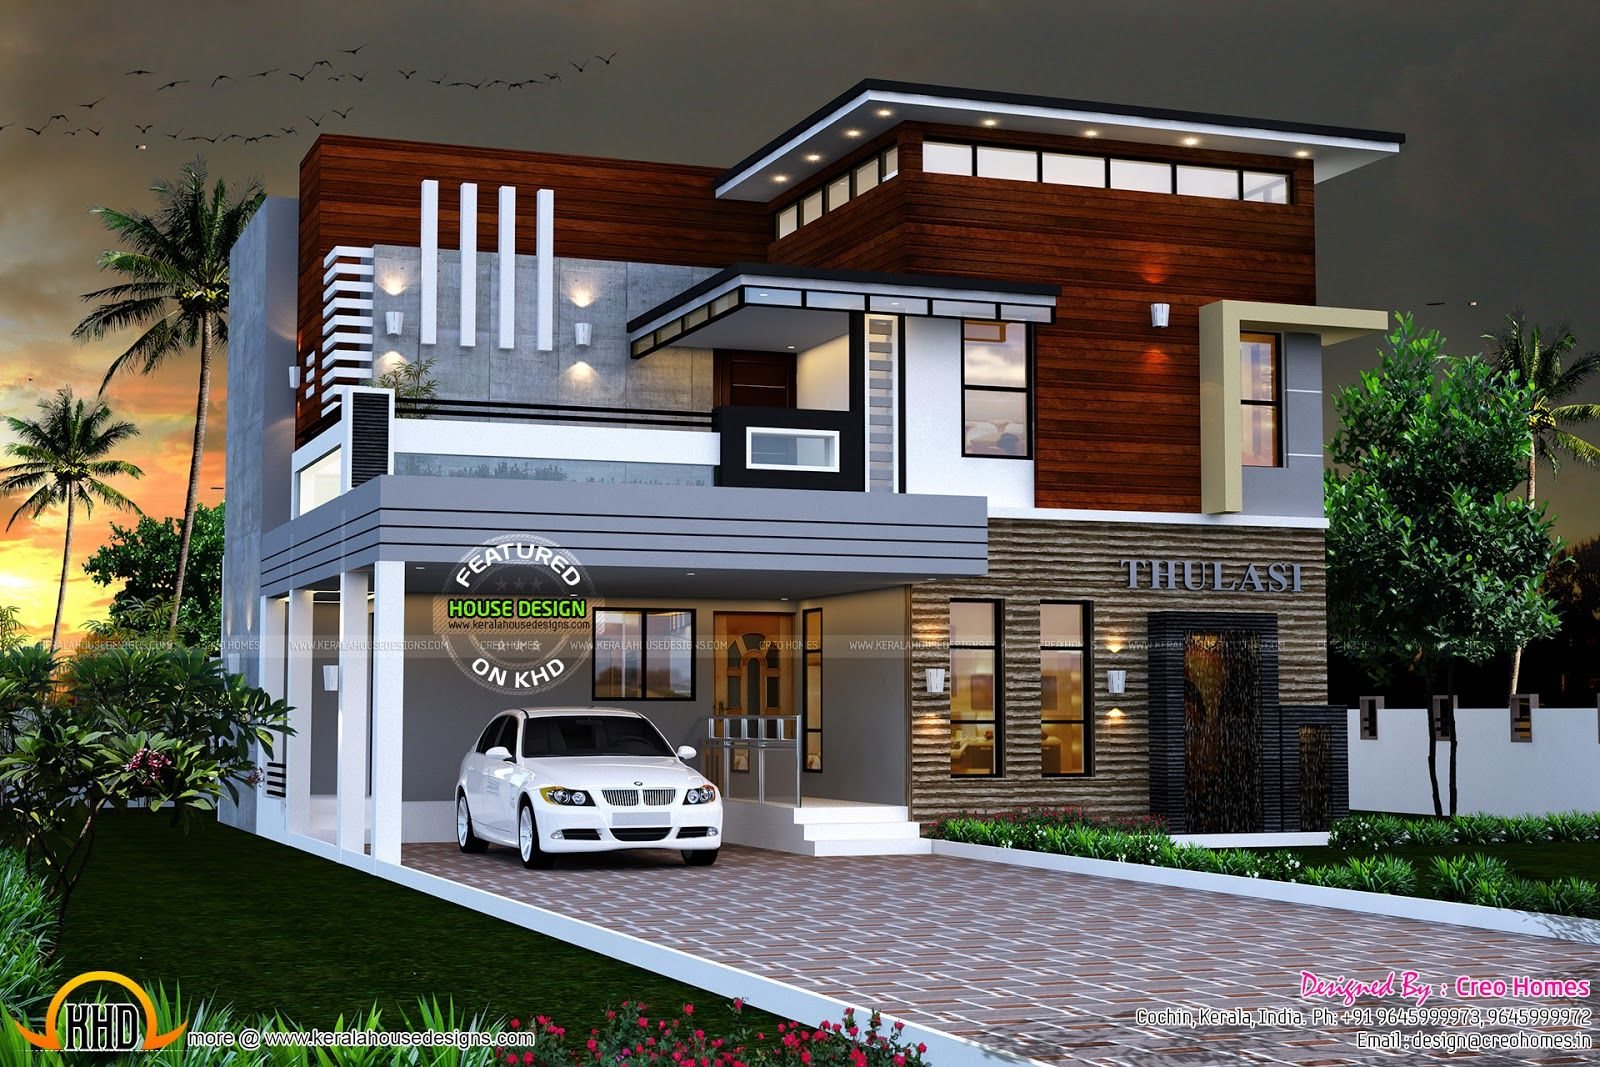 Superb Eterior Design Modern Small House Architecture Building Plan Home Design  Kerala House Plans Home Decorating Ideas Interior Design